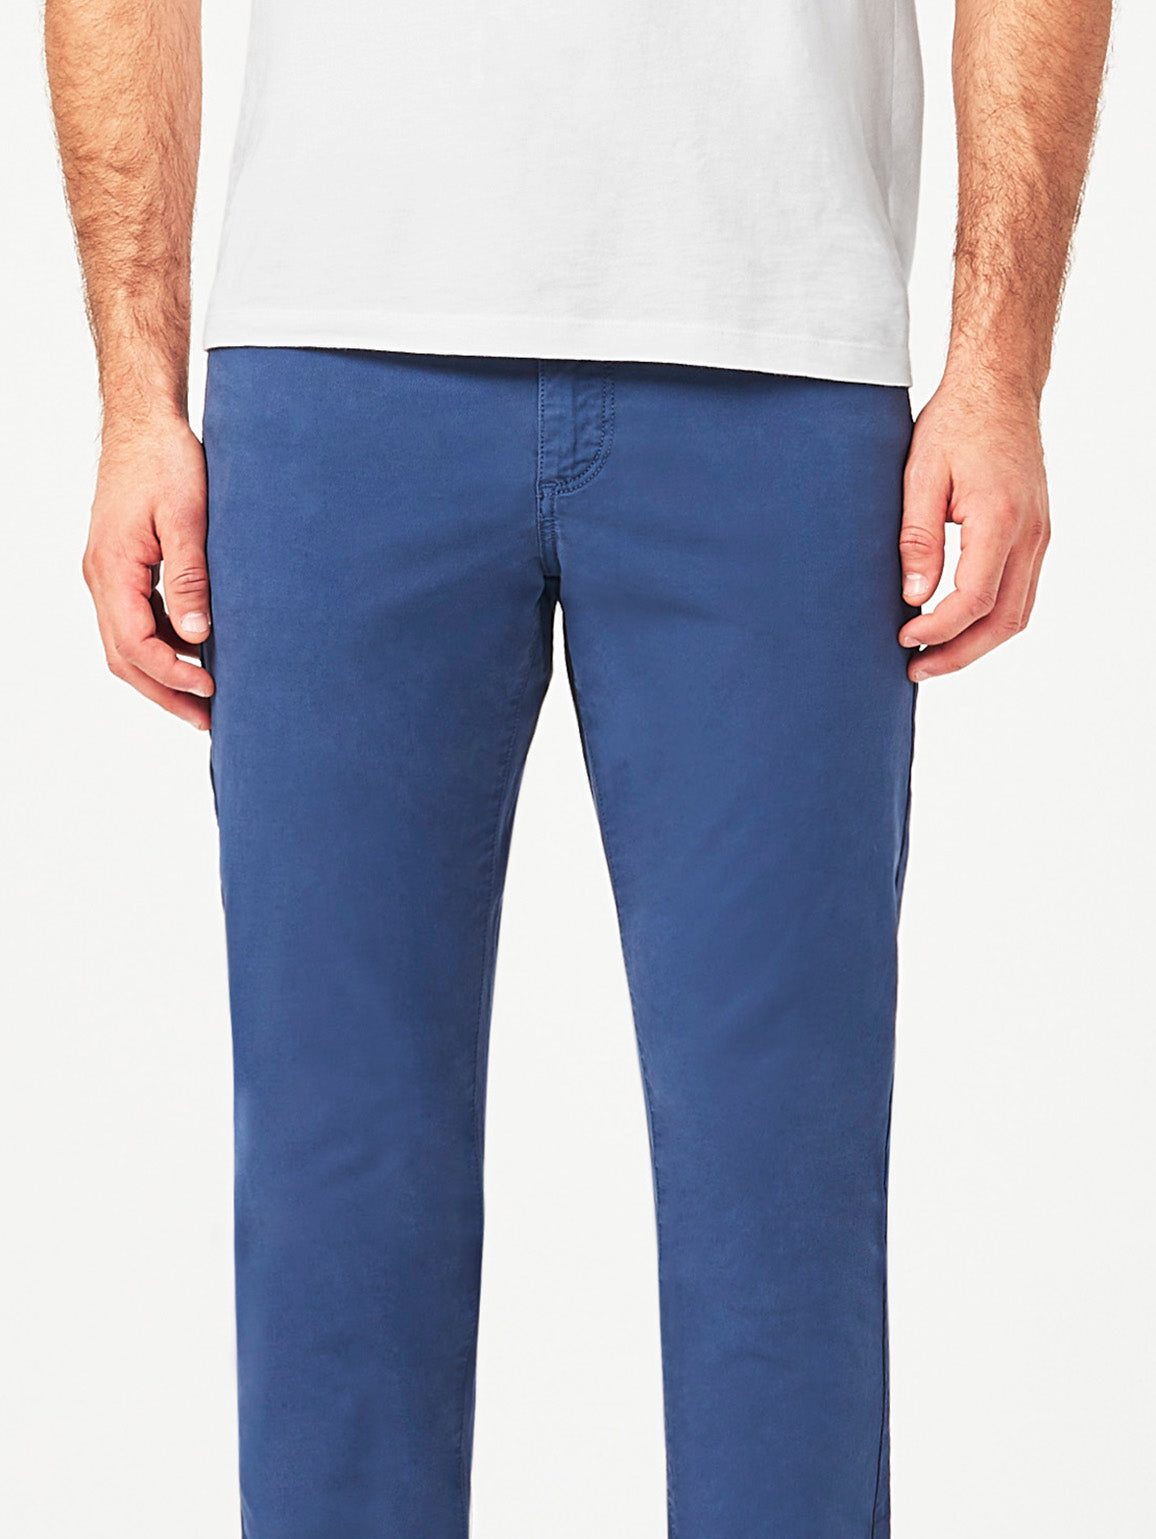 Men - Blue Colored Straight Denim - Avery Straight Noontide - DL1961